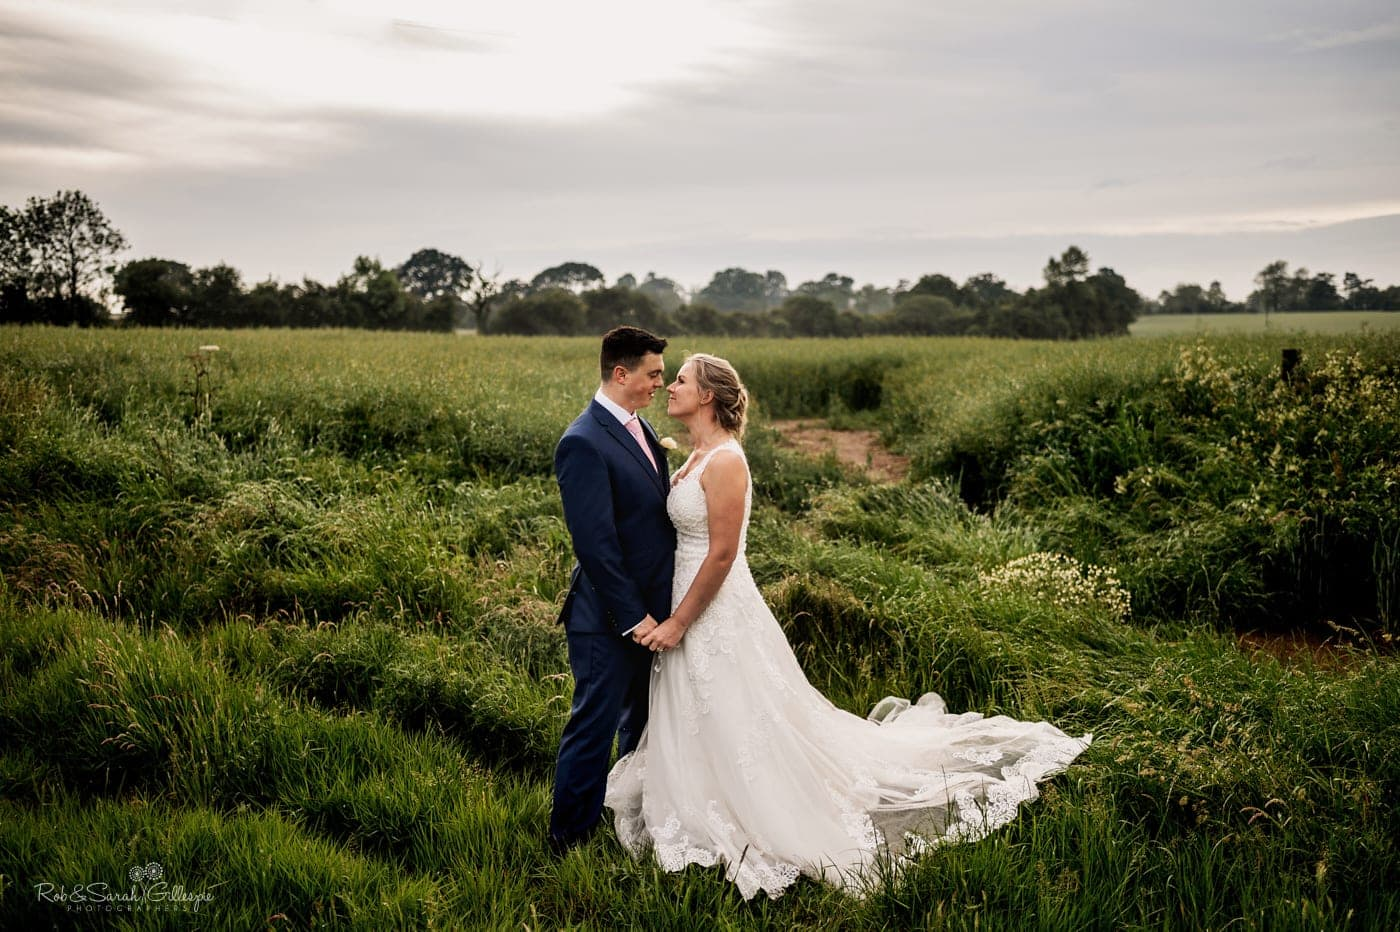 Bride and groom in lush field during small wedding in the Midlands